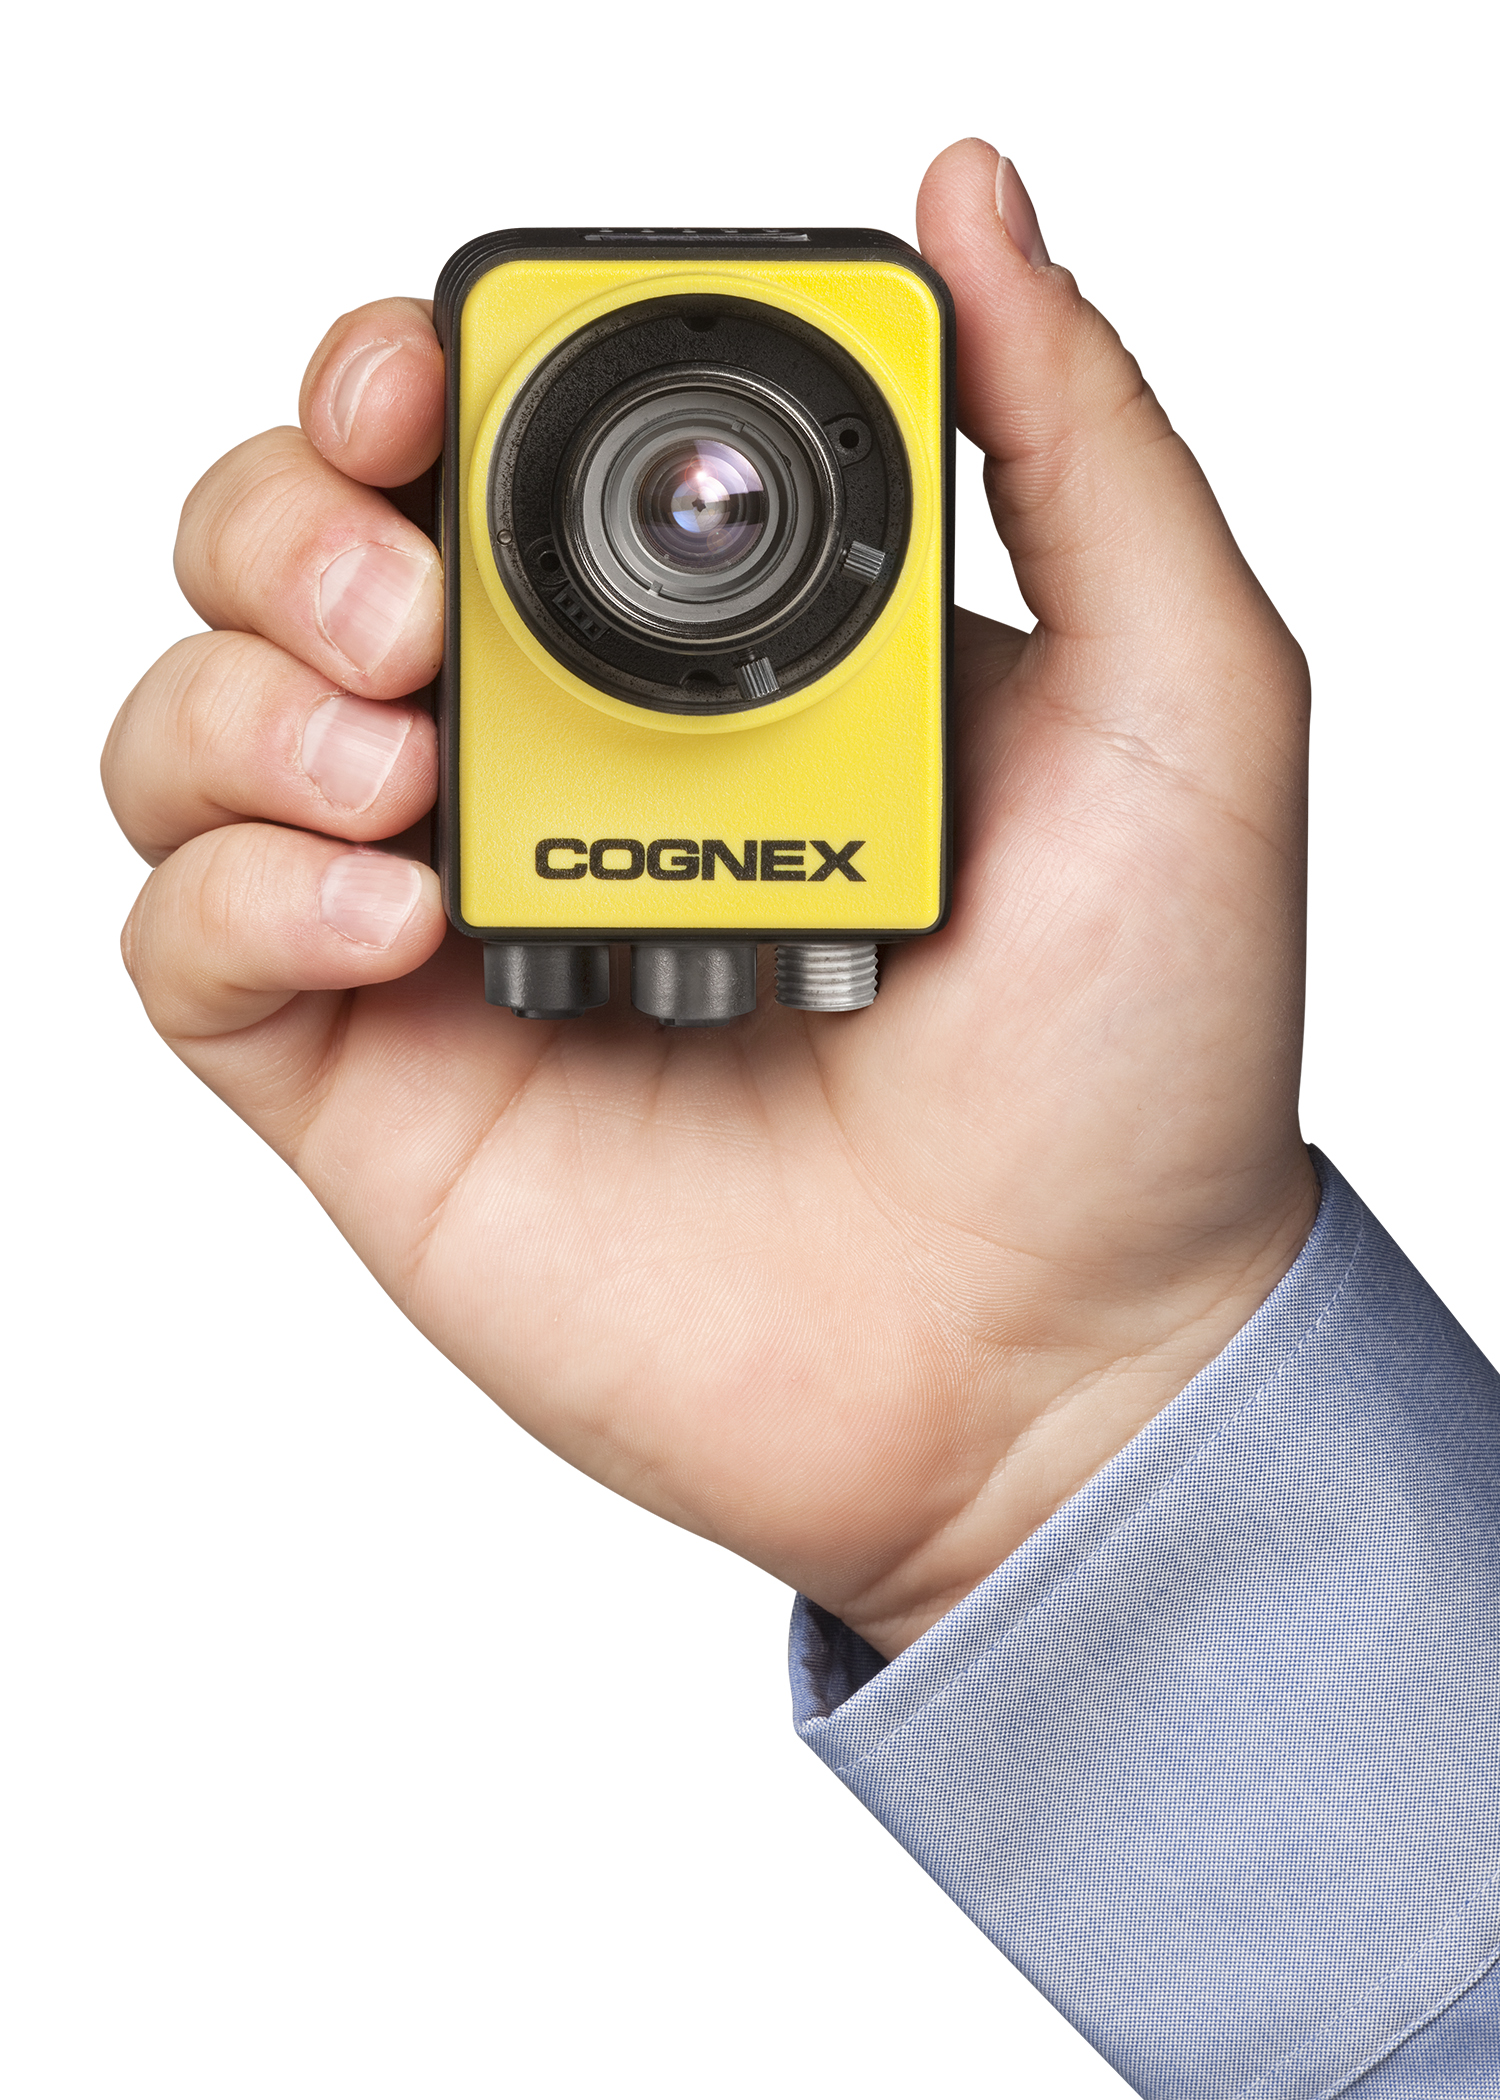 male hand holding cognex In-Sight 7000